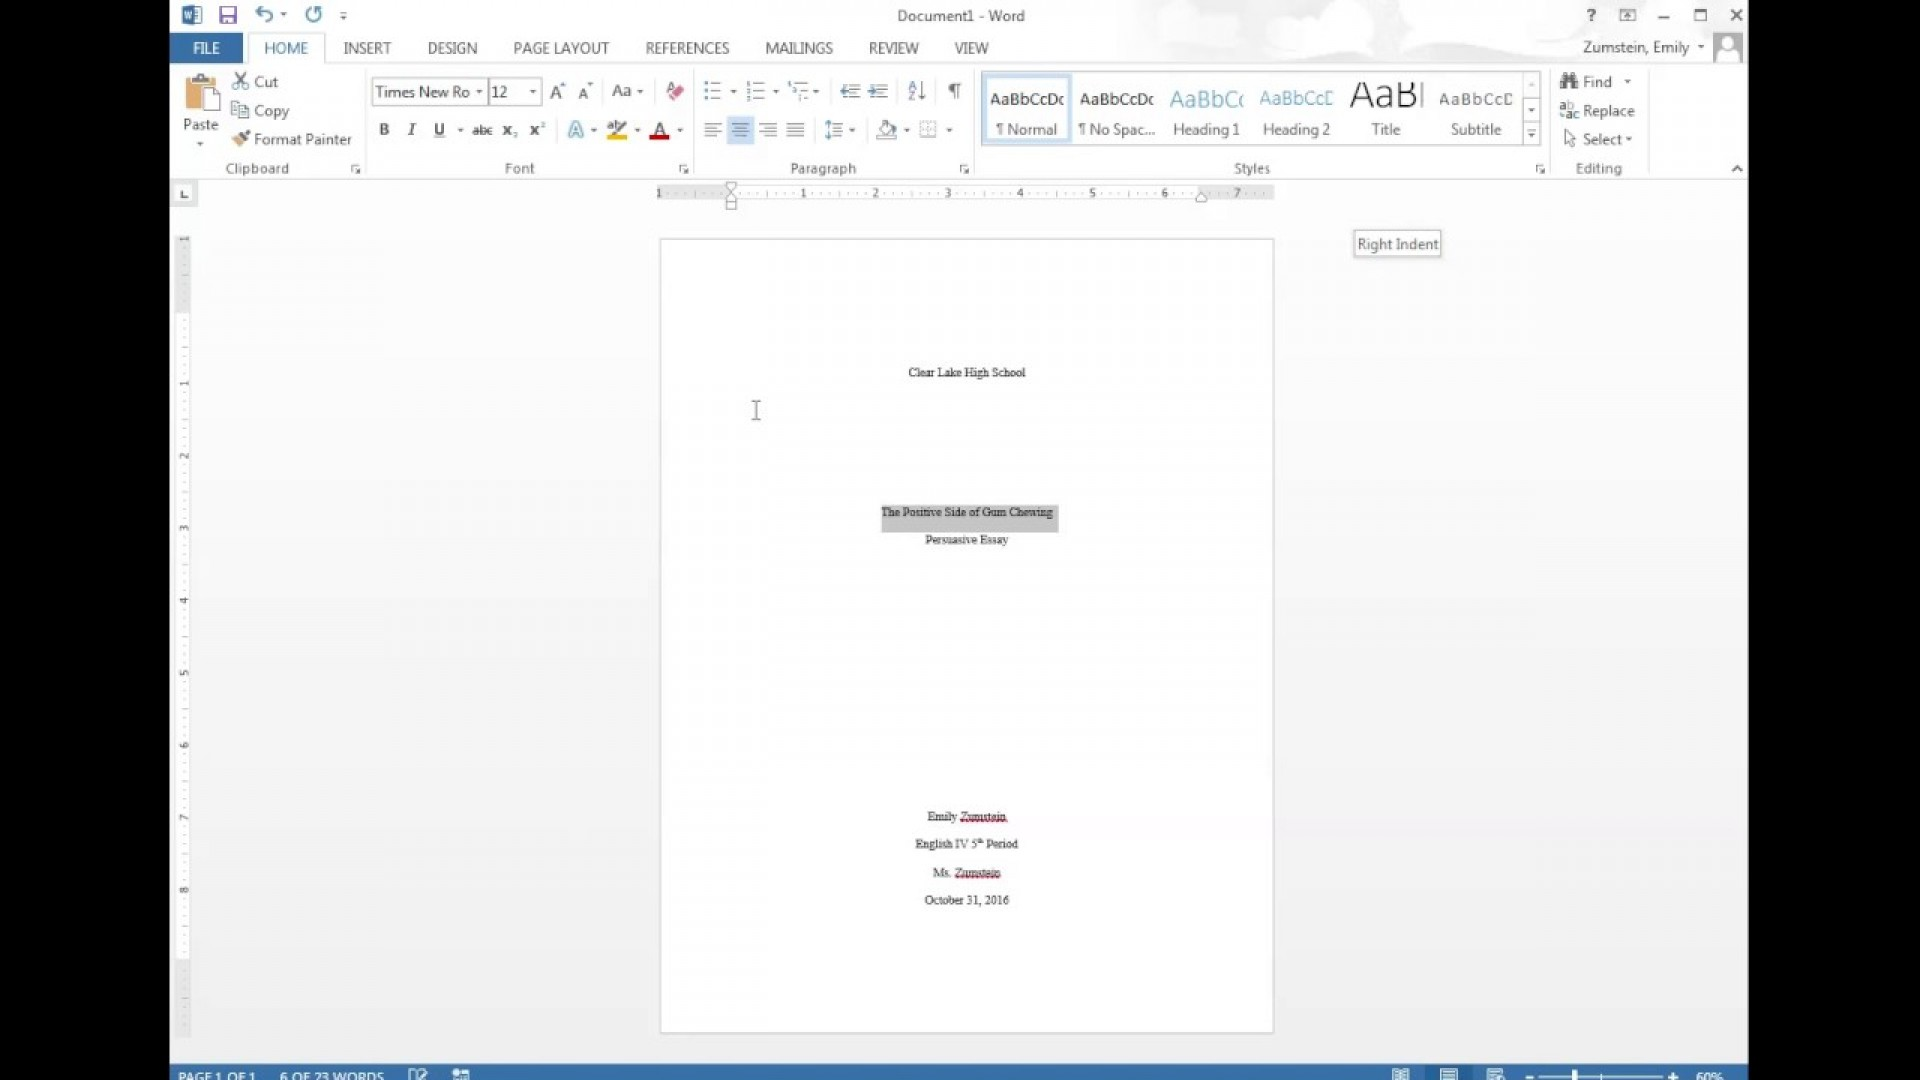 014 Research Paper First Page Mla Format Unique Style For The Of A Title 1920